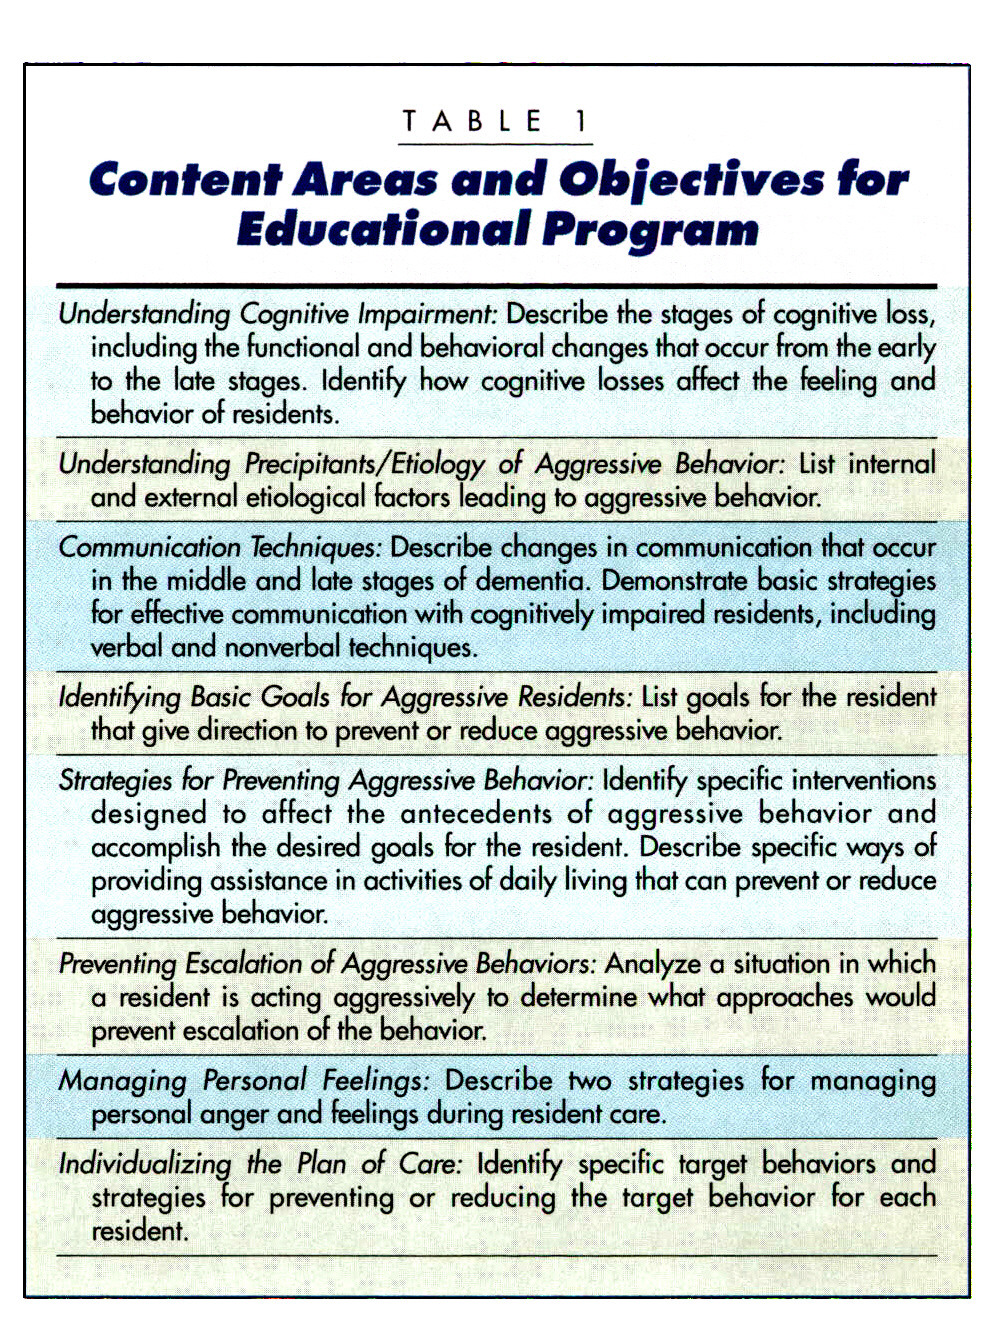 TABLE 1Content Areas and Objectives for Educational Program